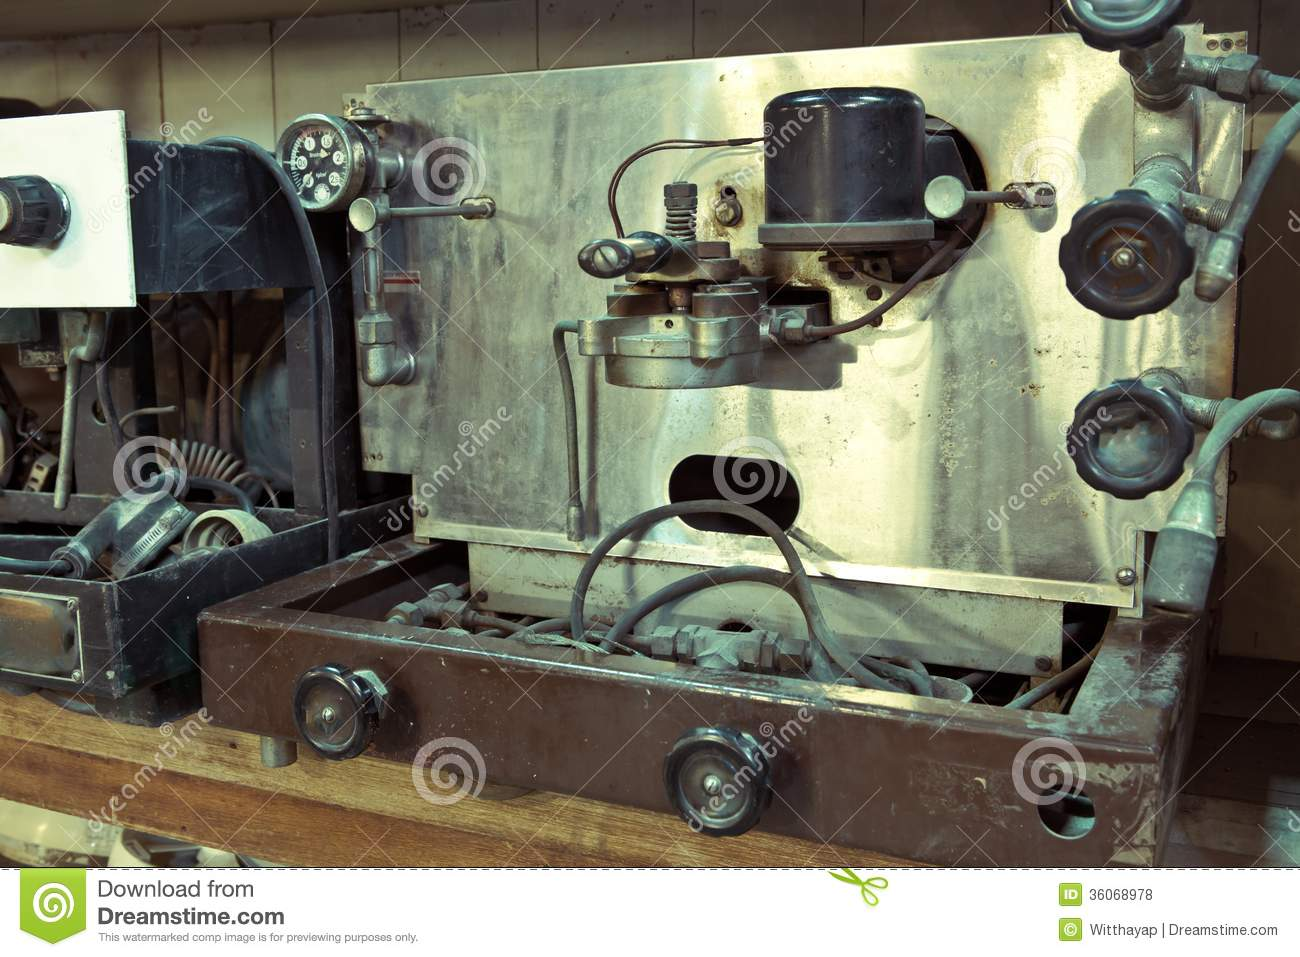 Coffee machine royalty free stock photos image 36068978 - Machine a cafe vintage ...